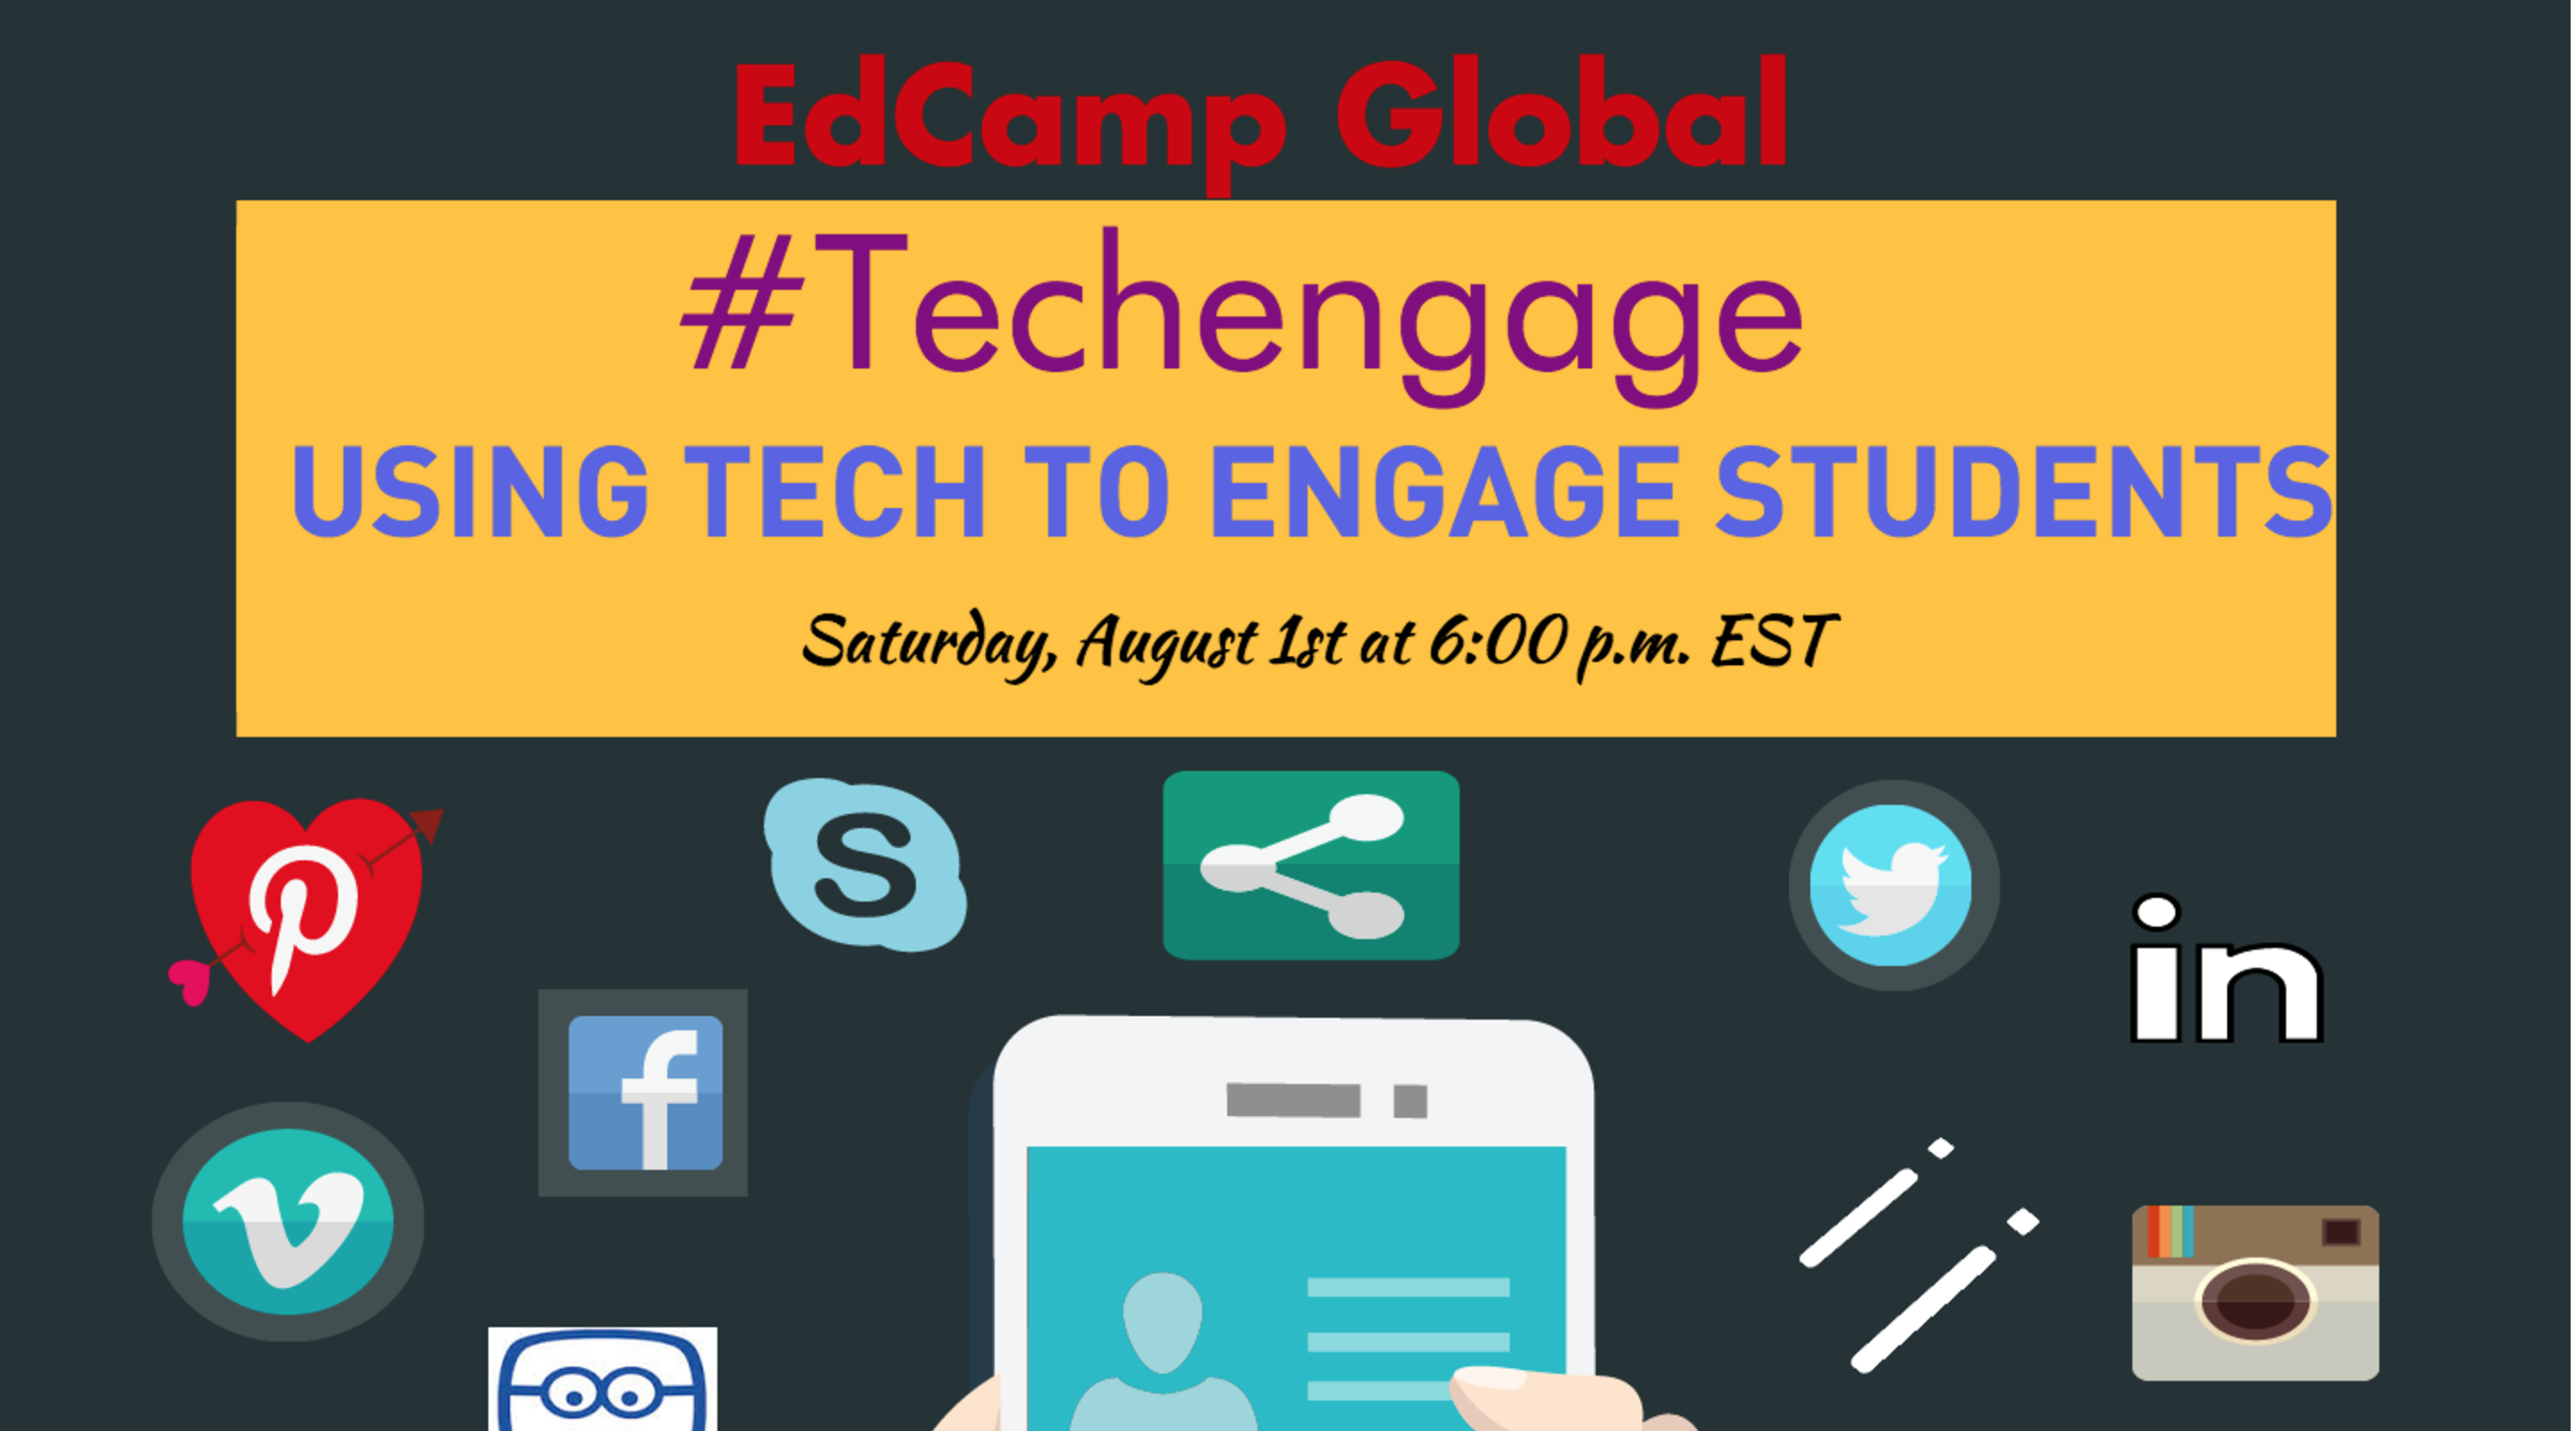 edcamp poster, how to use technology to engage students